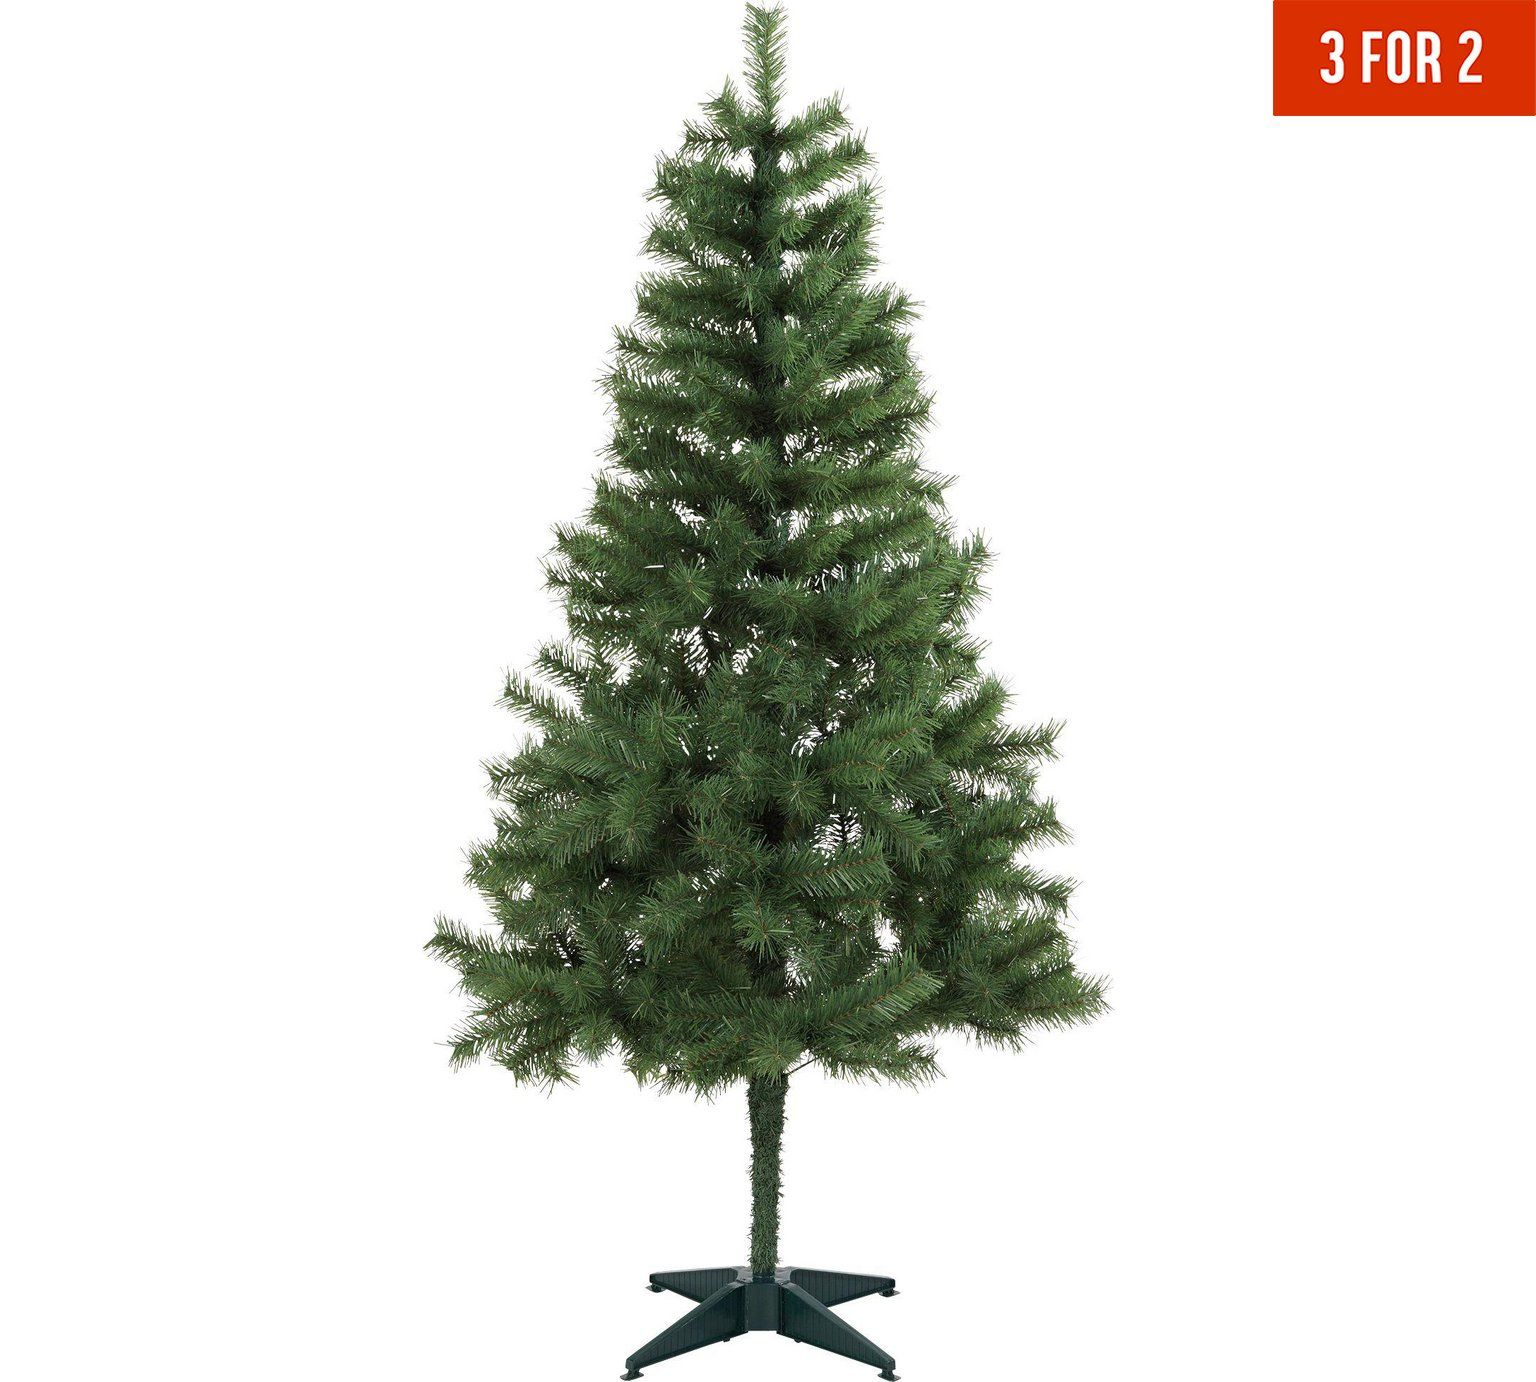 Buy Argos Home 5ft Noel Christmas Tree Green Christmas Trees Argos Green Christmas Tree Christmas Tree Green Christmas